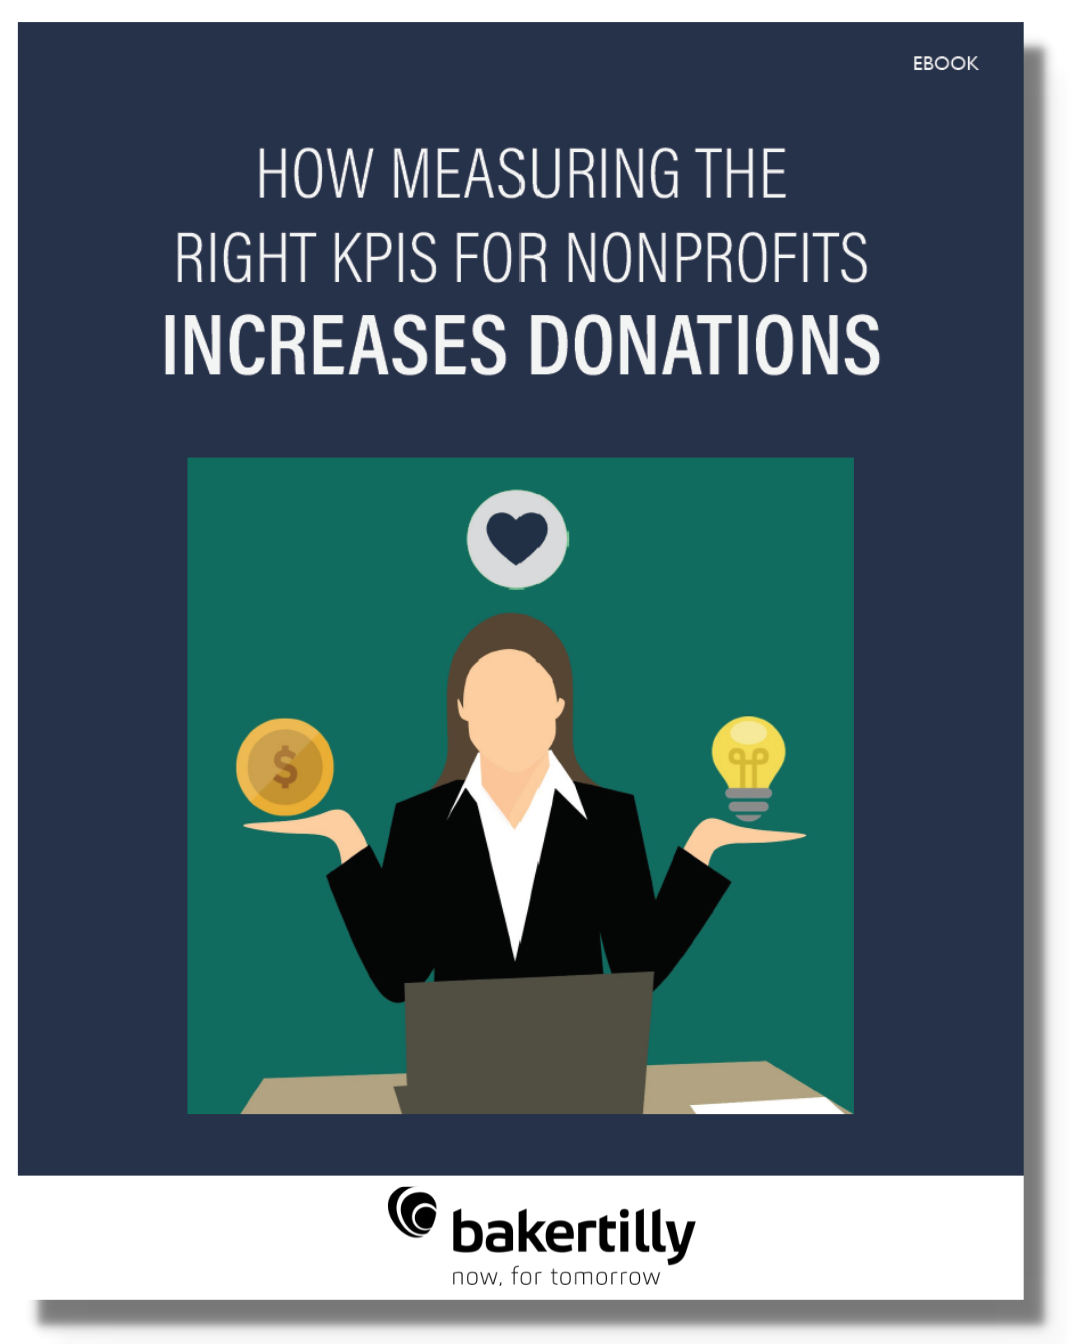 How Measuring the Right KPIs for Nonprofits Increases Donations